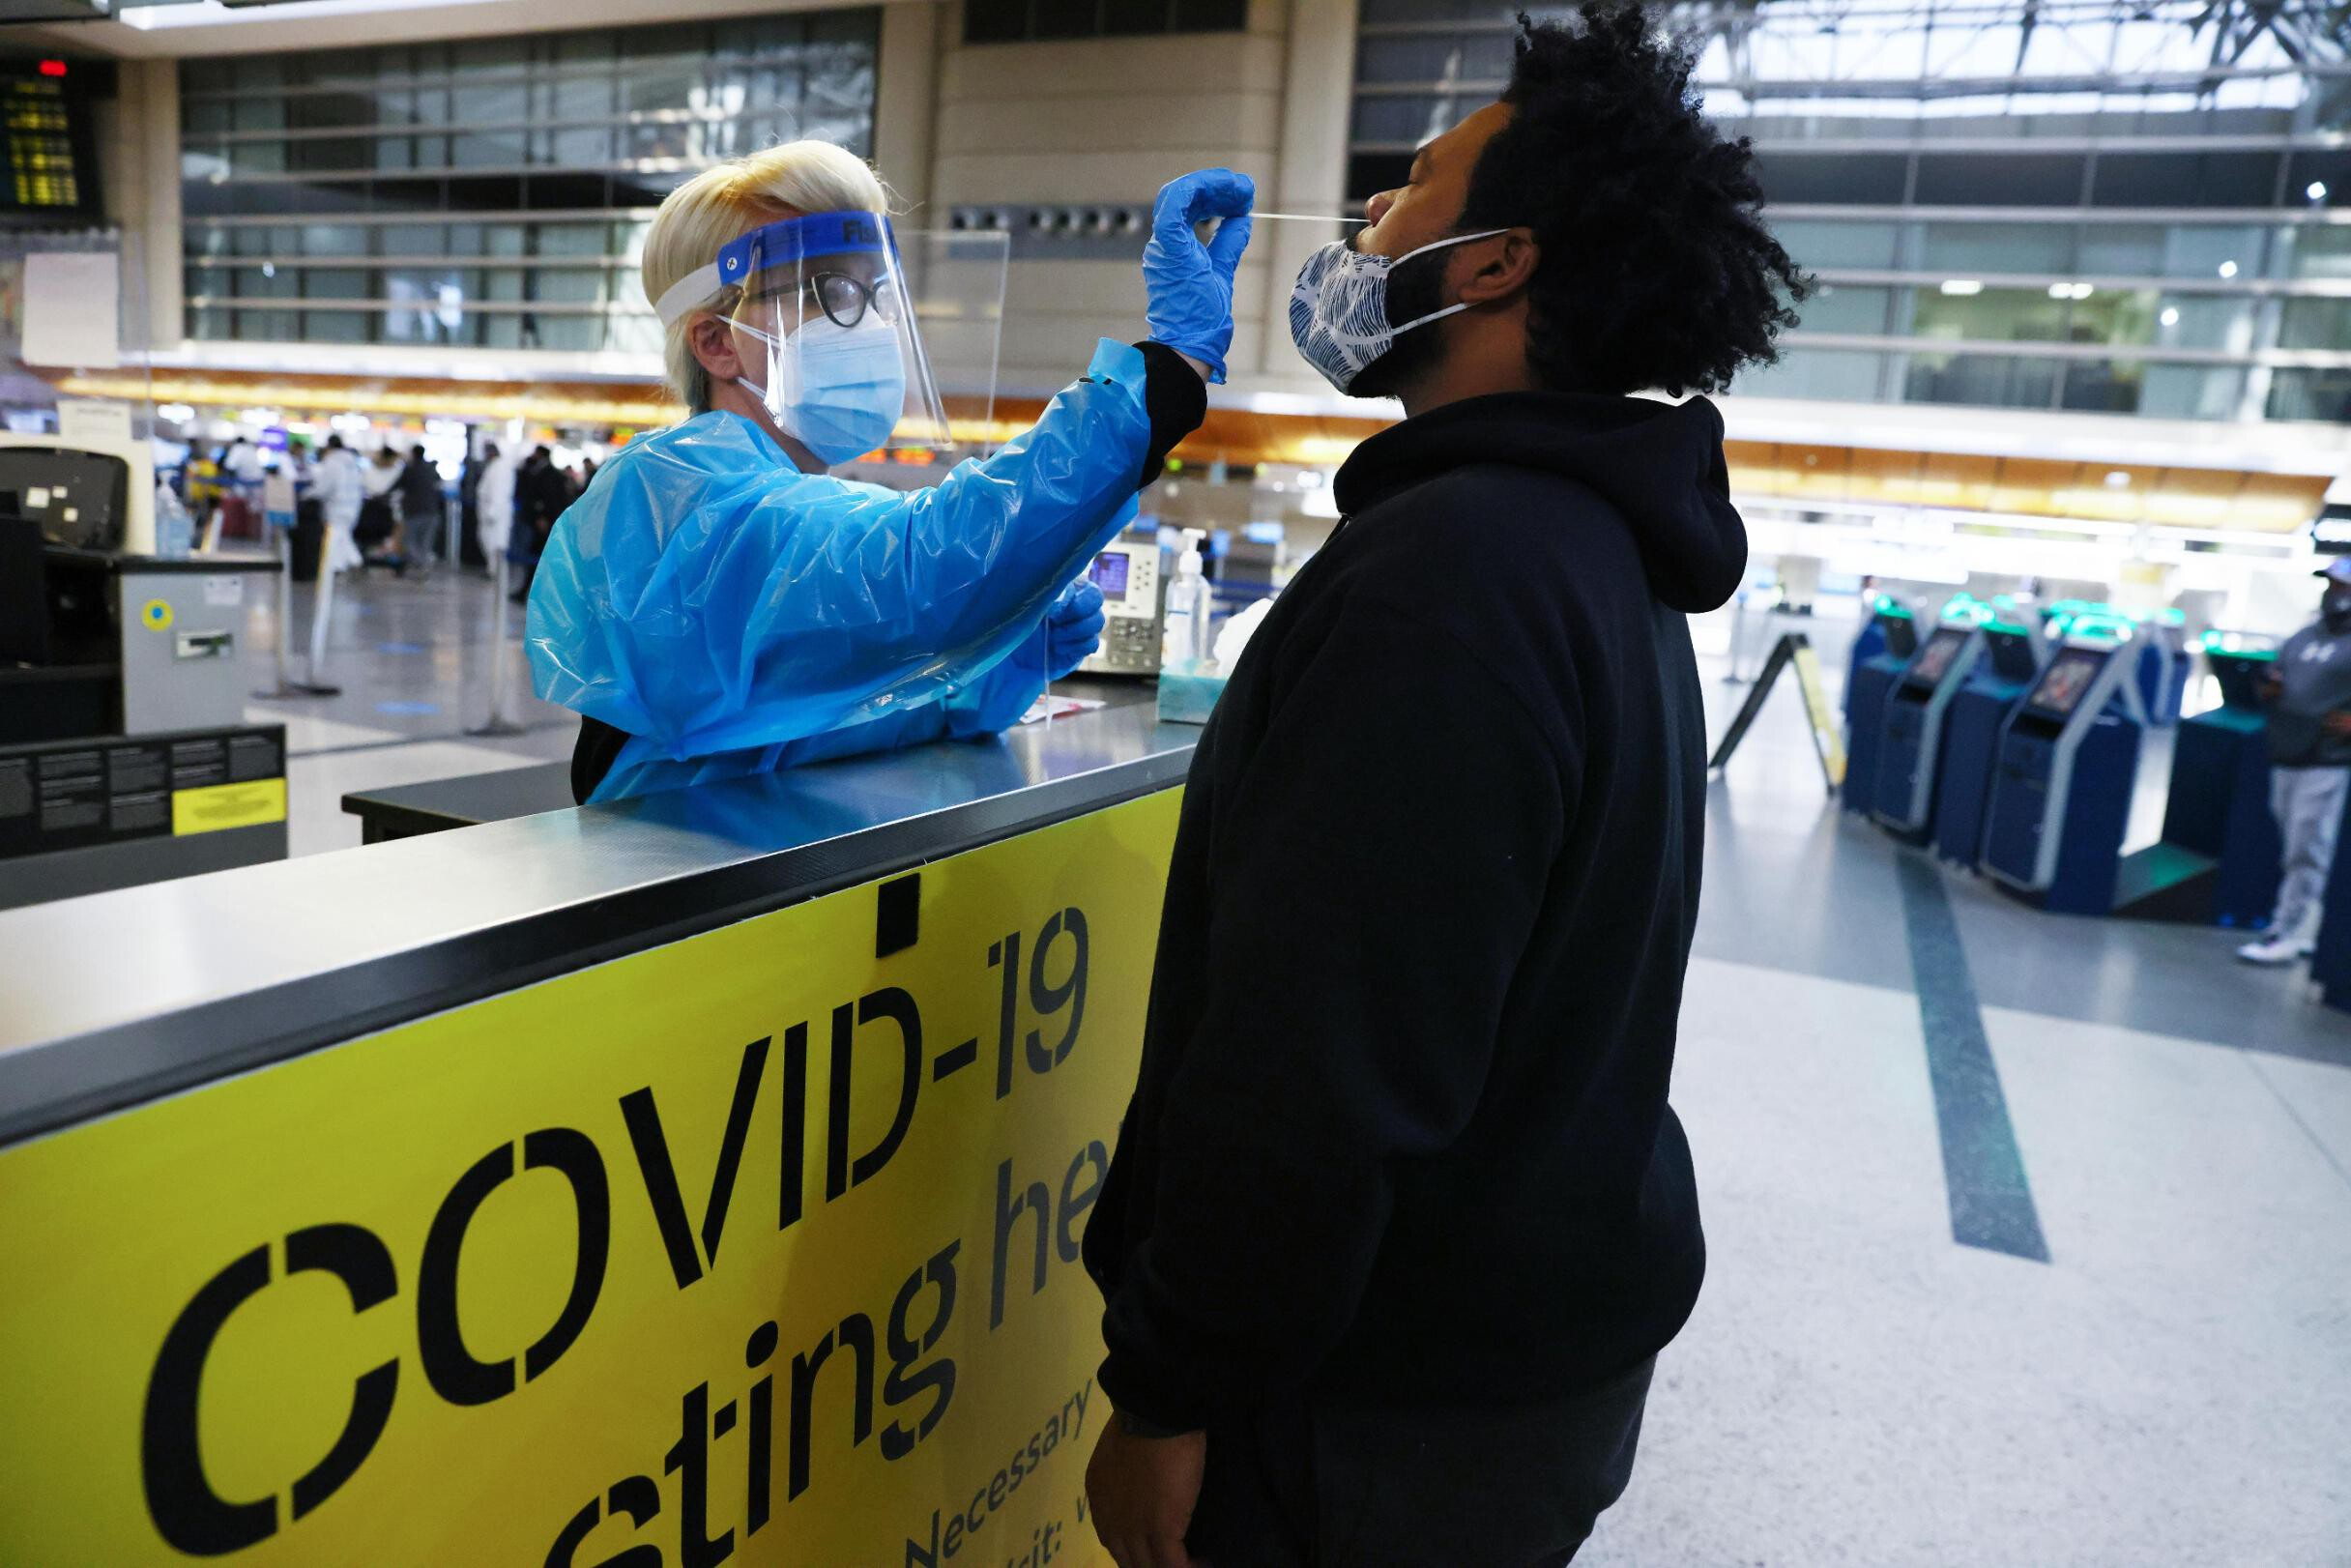 With Delta variant spreading, experts split on whether to test vaccinated people for Covid-19